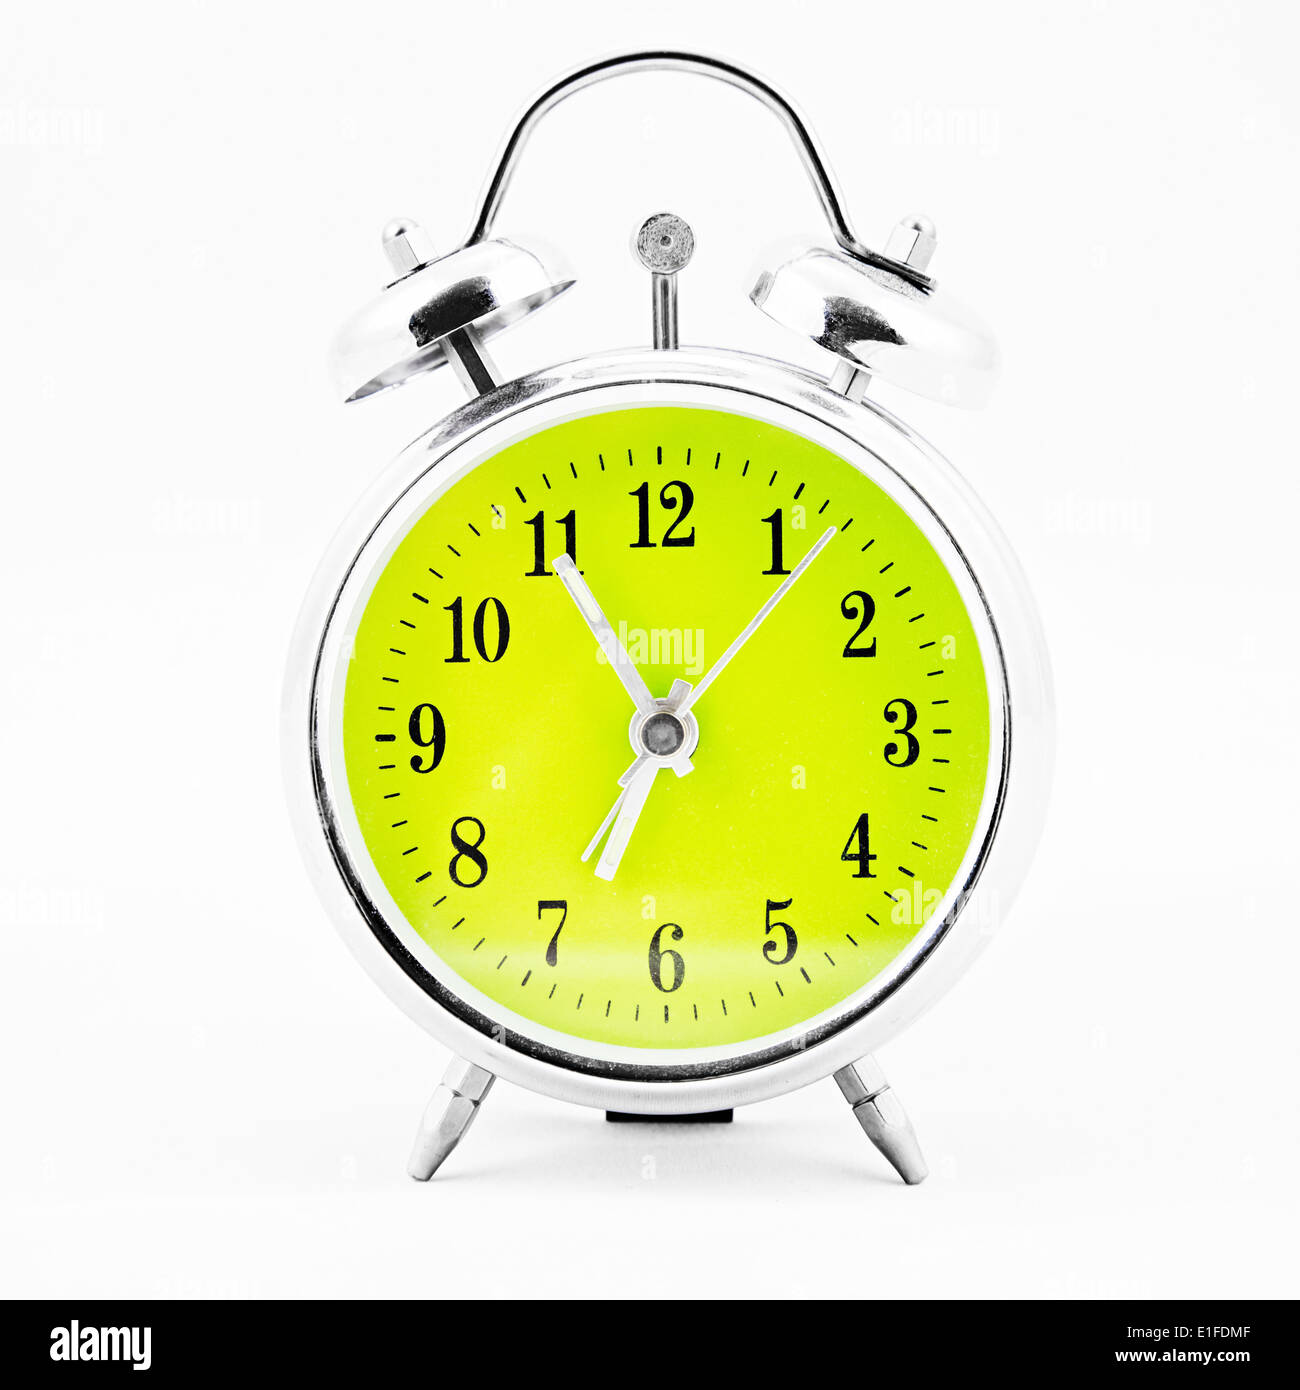 alarm clock on white background showing time five minutes before seven